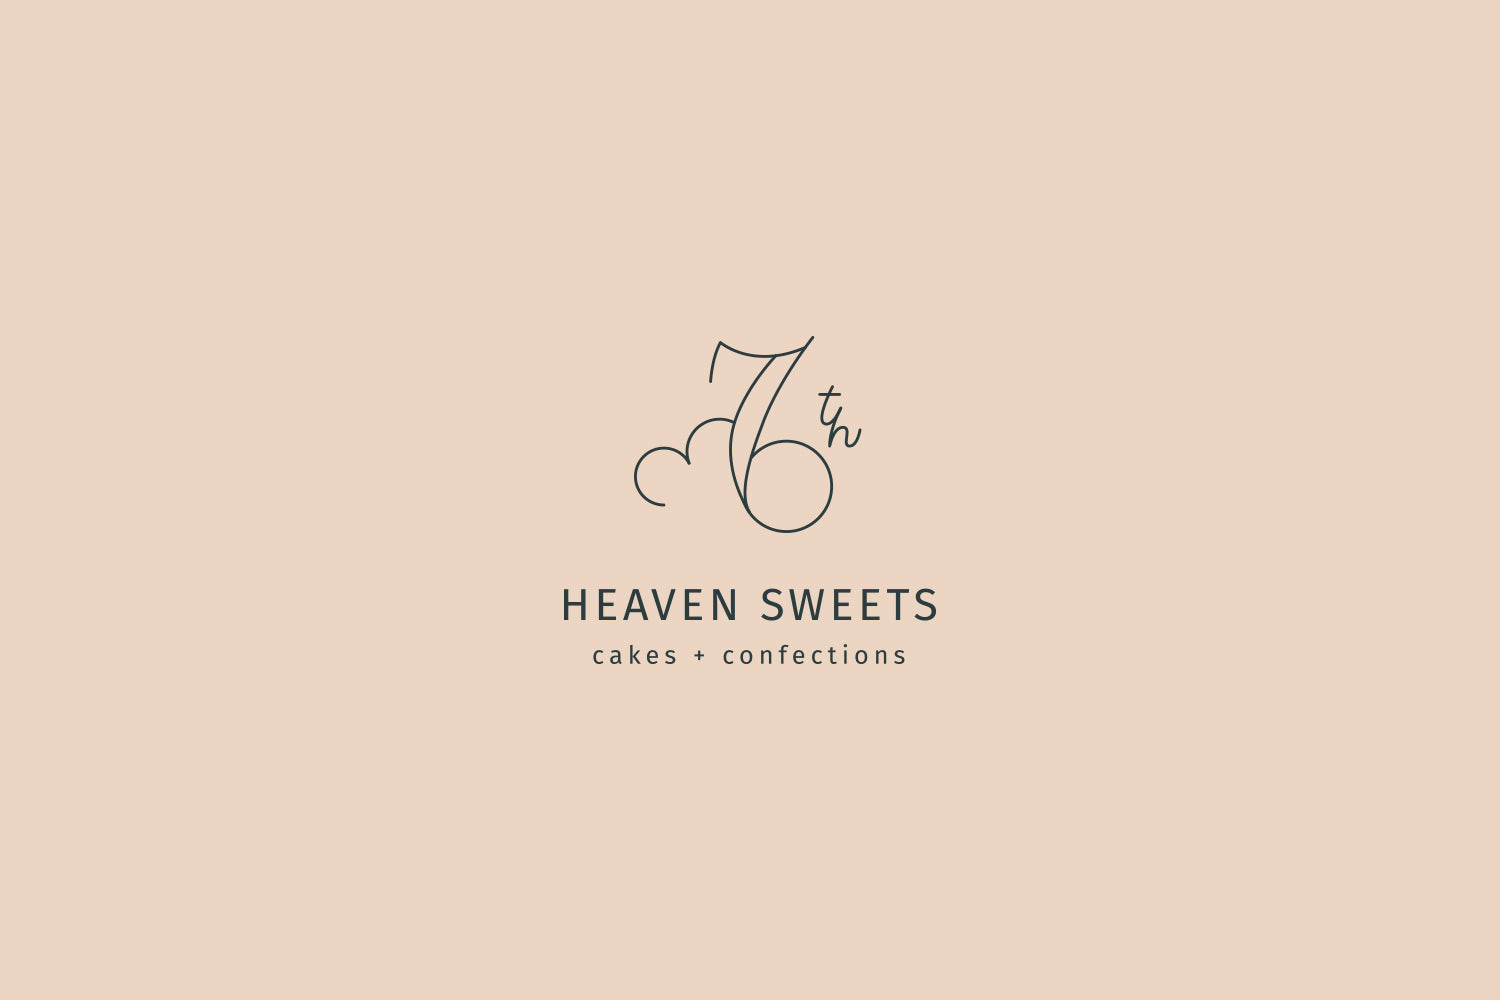 julabrand-7th-heaven-sweets-branding-print-collateral